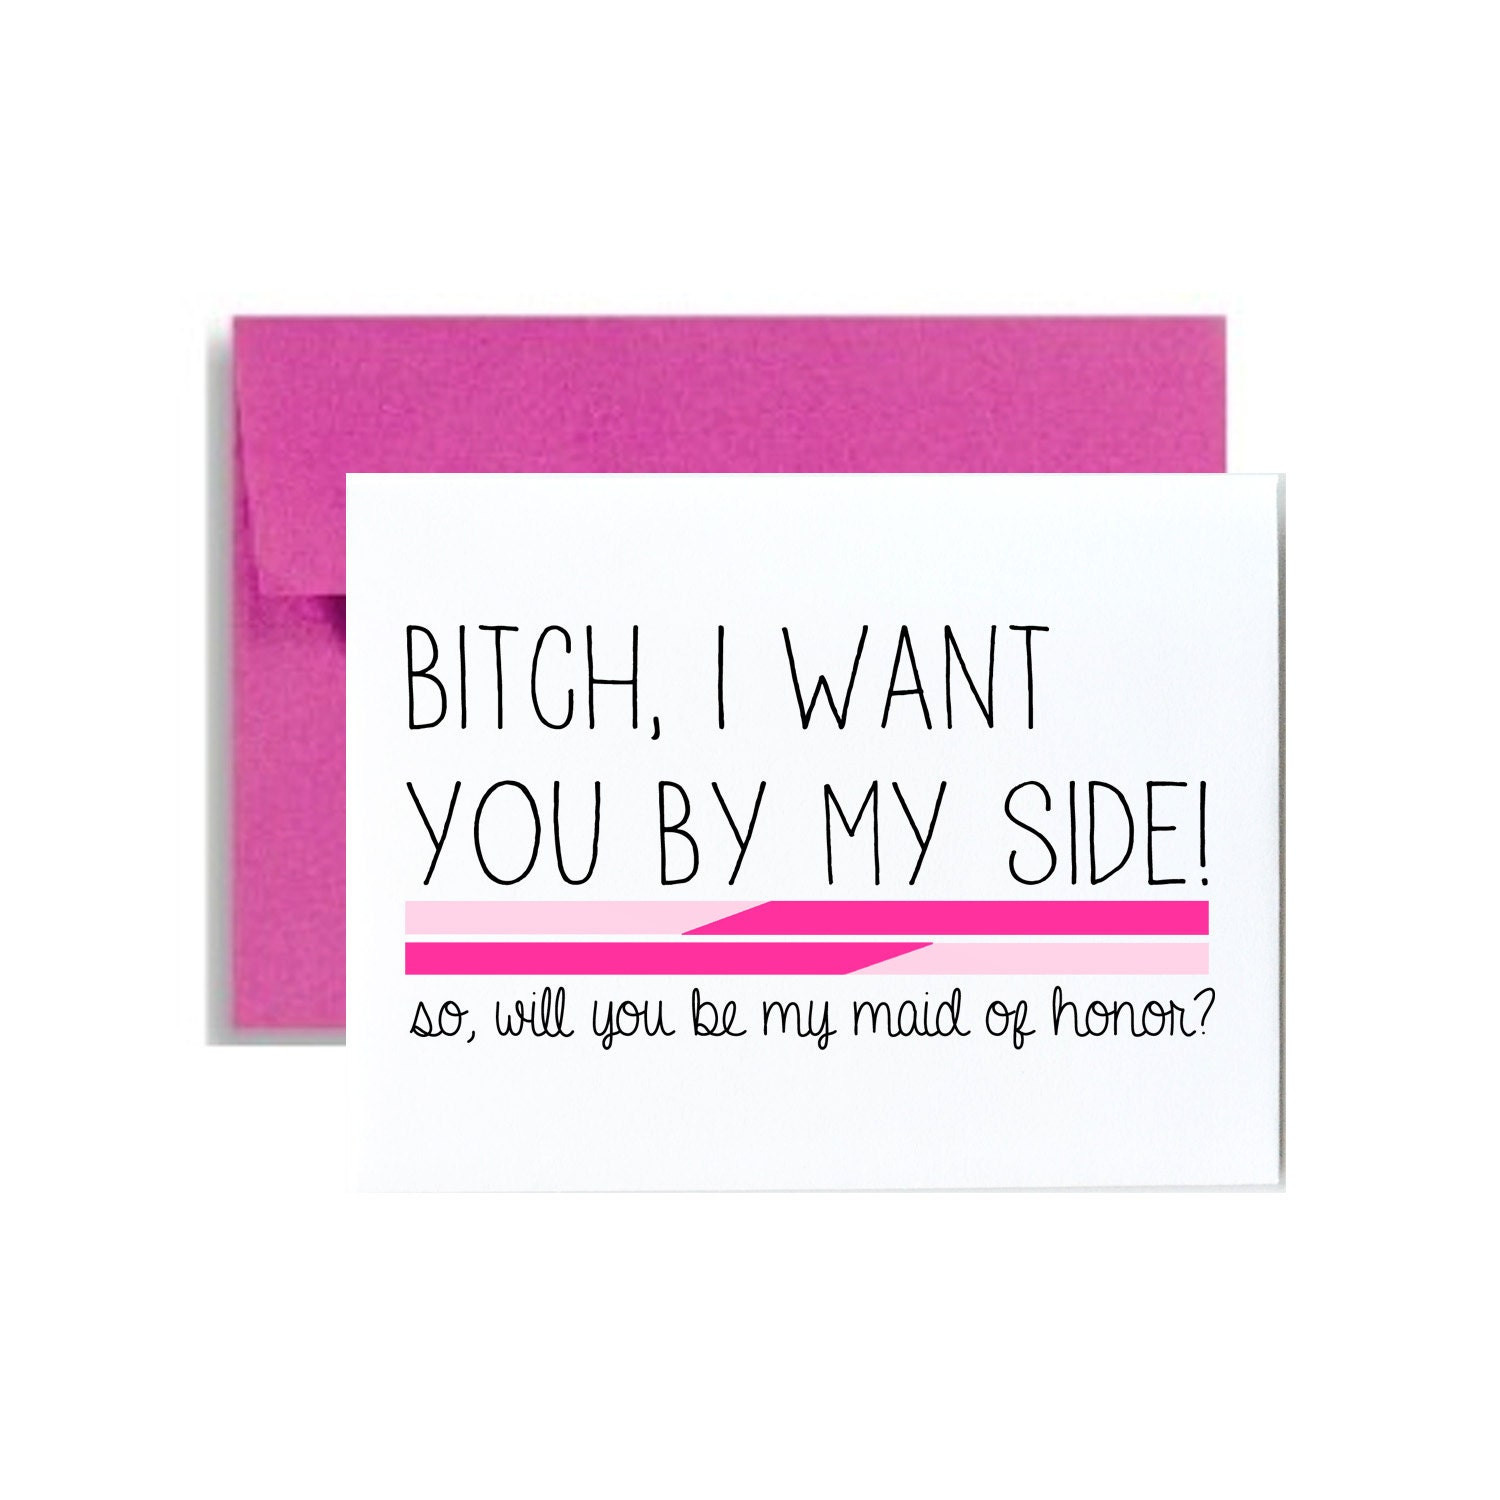 Be my maid of honor card Bitch I want you by my side pink